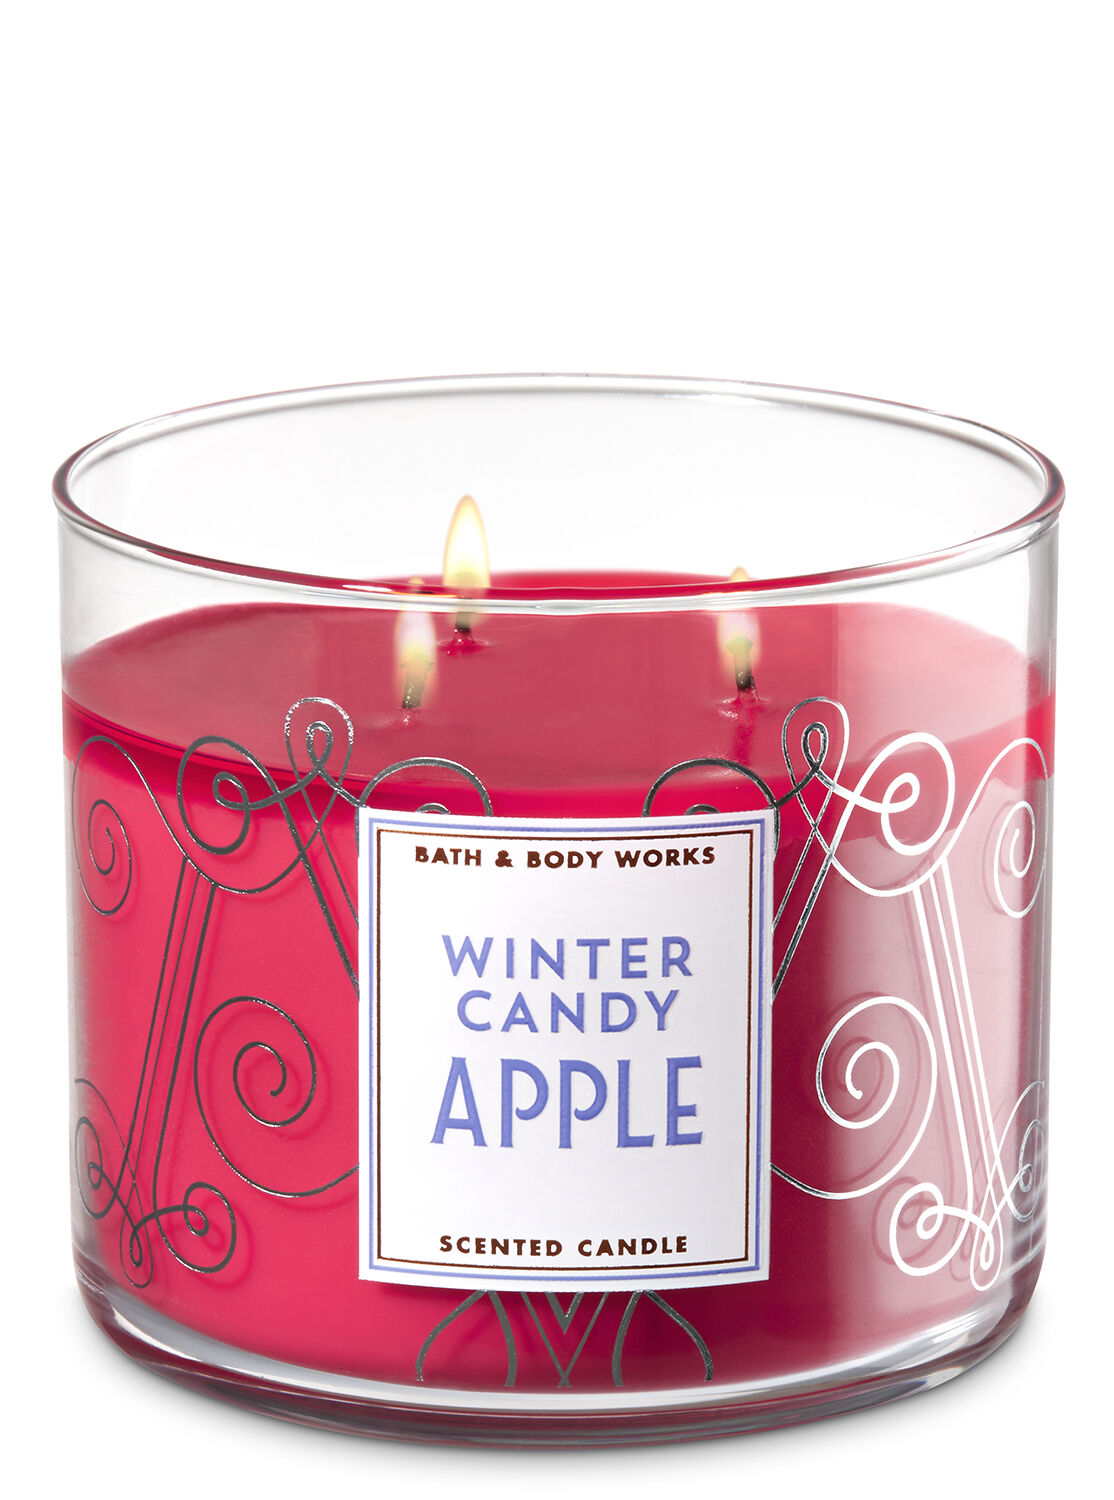 Winter Candy Apple 3-Wick Candle - Bath And Body Works